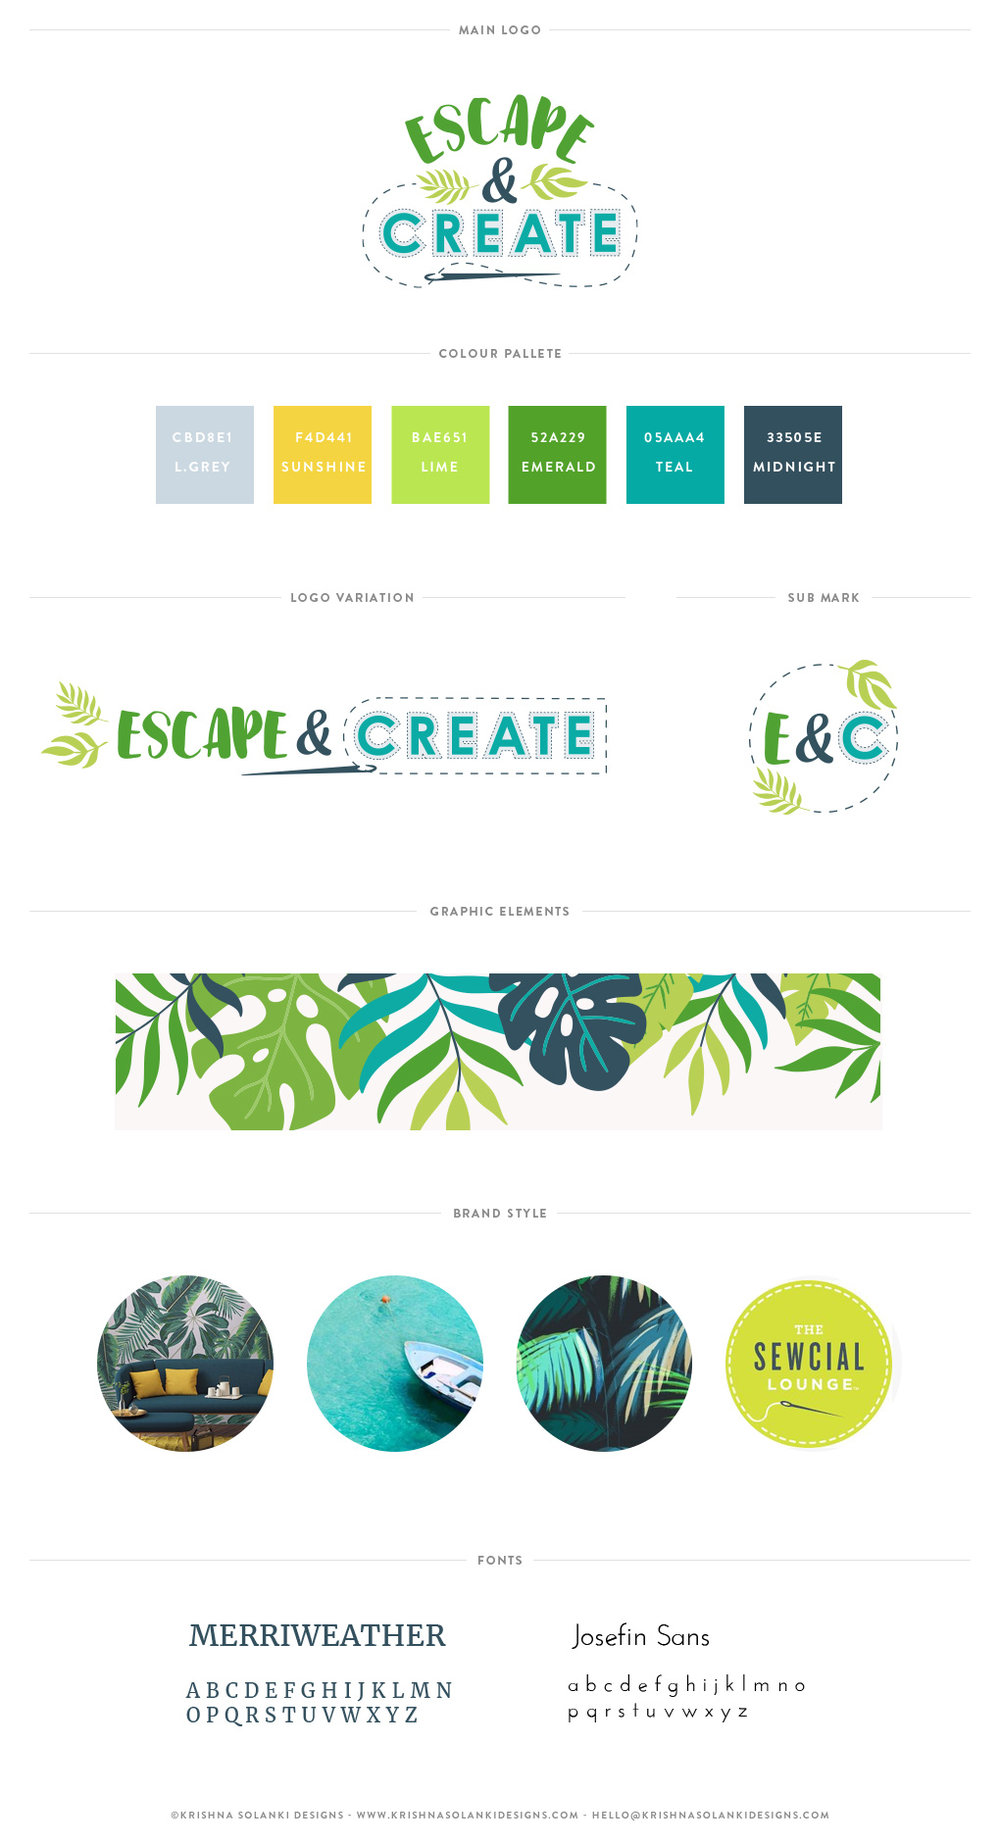 Krishna Solanki Designs - Escape & Create - Brand Board